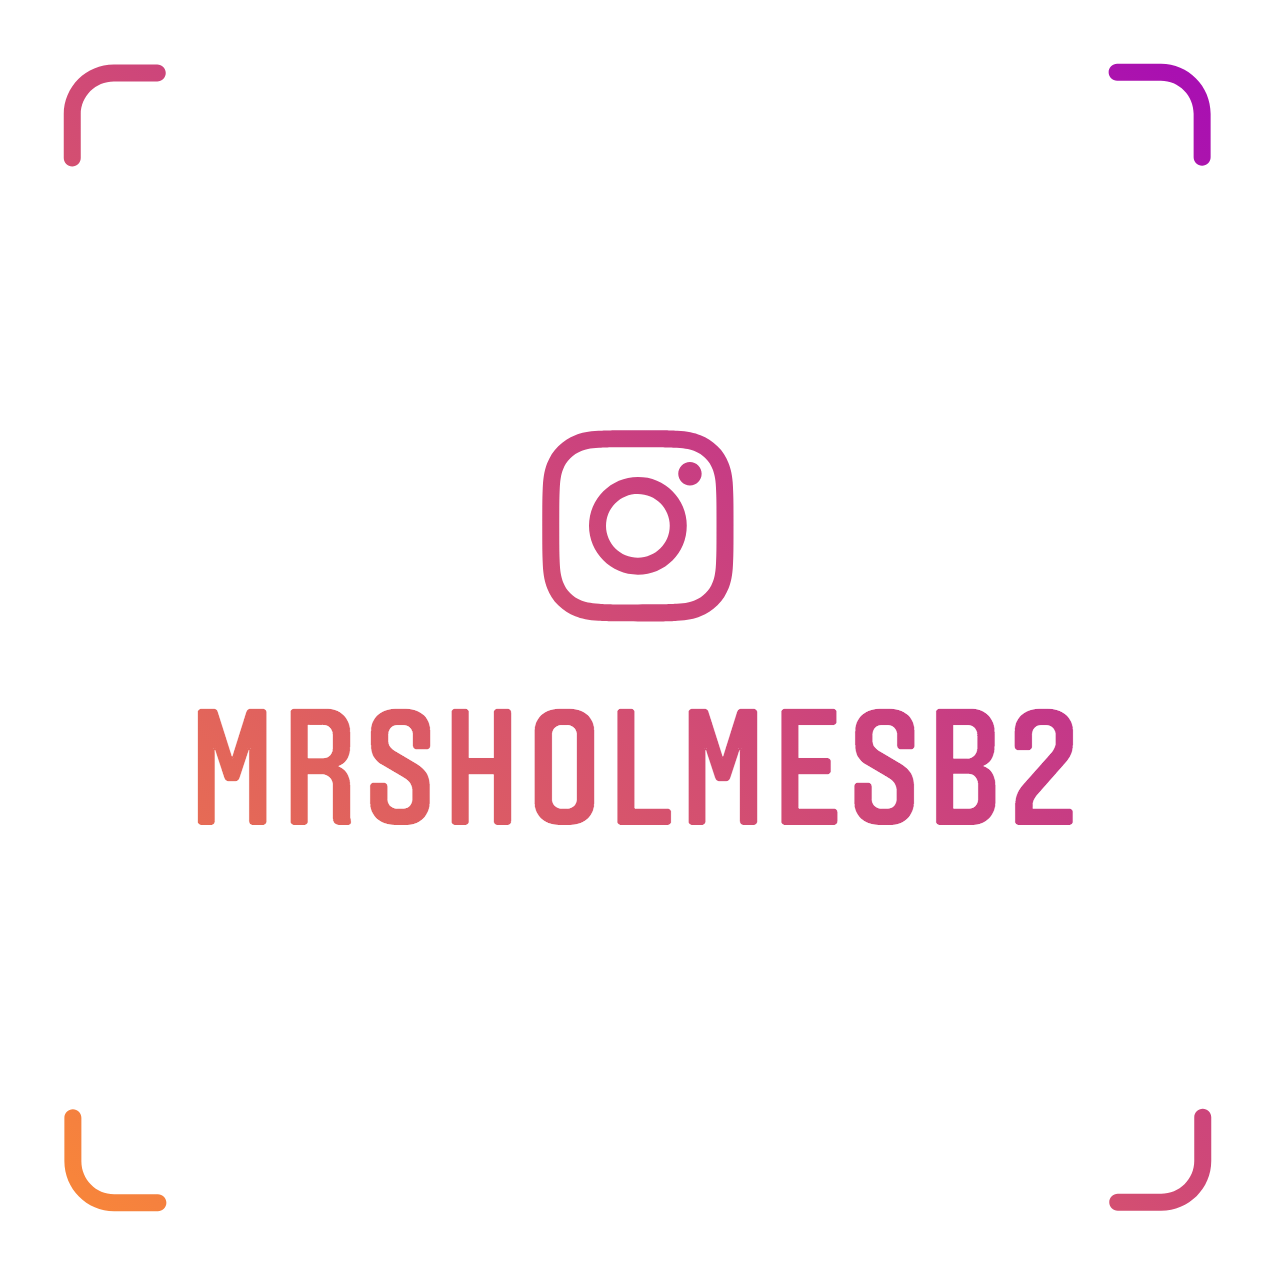 Follow on Instagram, MrsHolmesB2